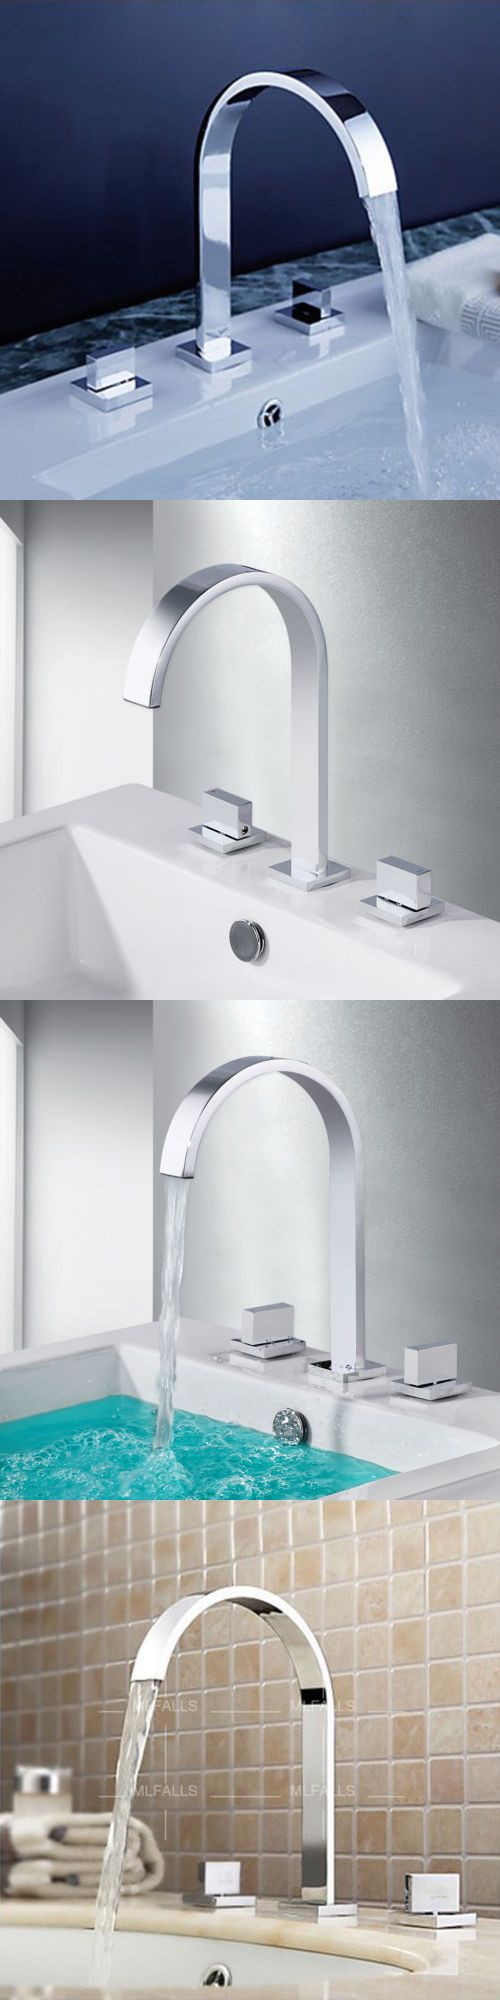 Bathroom sink faucet one hole double handle basin mixer tap ebay - Faucets 42024 Bathroom Waterfall Faucet Basin Sink Curved Dual Handle Chrome Brass Mixer Tap